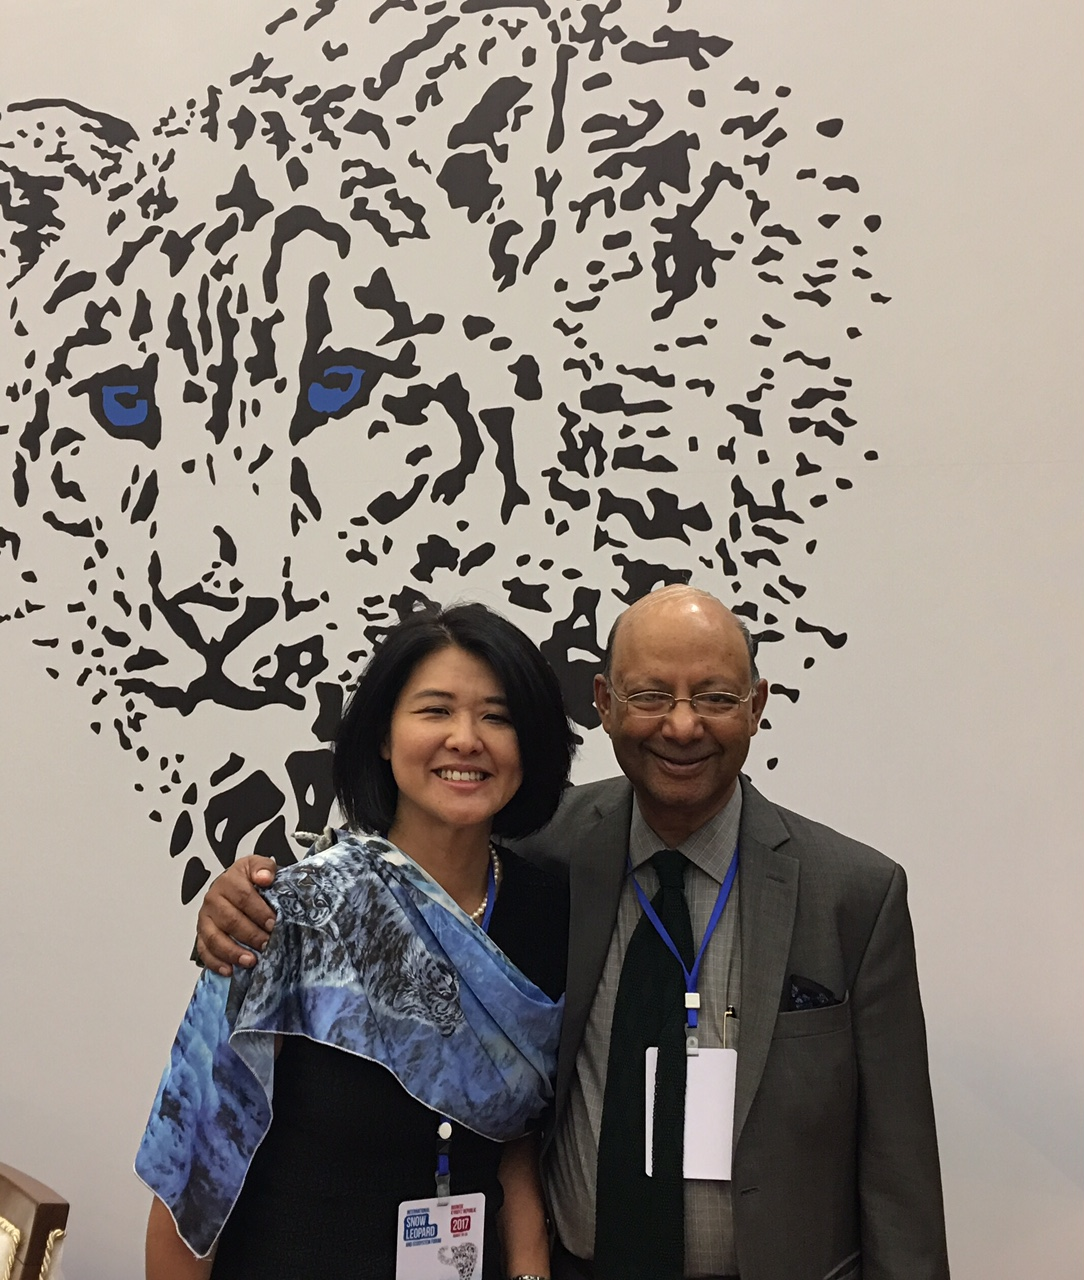 Keshav Varma CEO of Global Tiger and Snow Leopard Initiative with Yoko